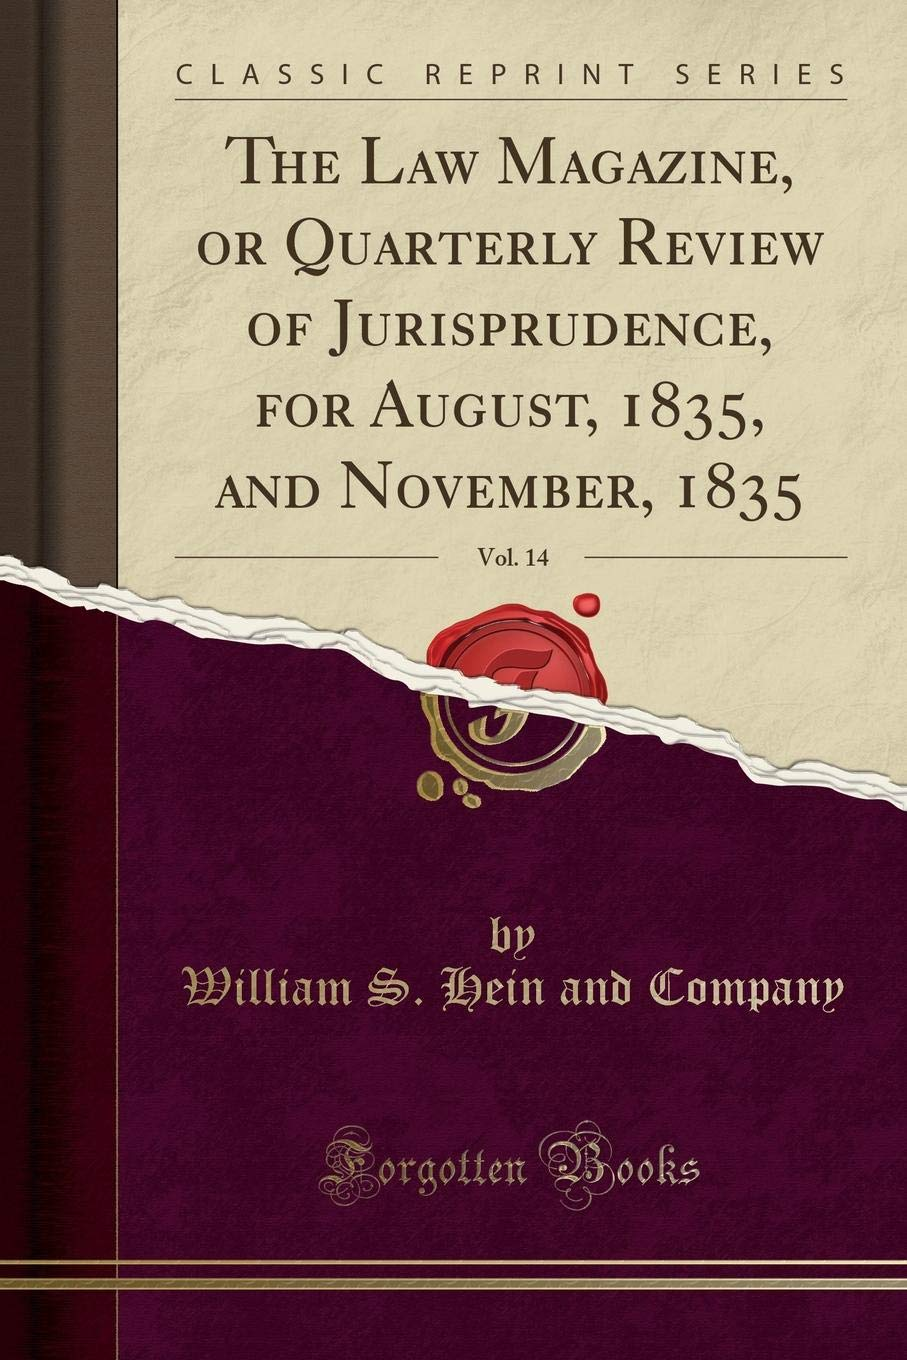 Download The Law Magazine, or Quarterly Review of Jurisprudence, for August, 1835, and November, 1835, Vol. 14 (Classic Reprint) PDF